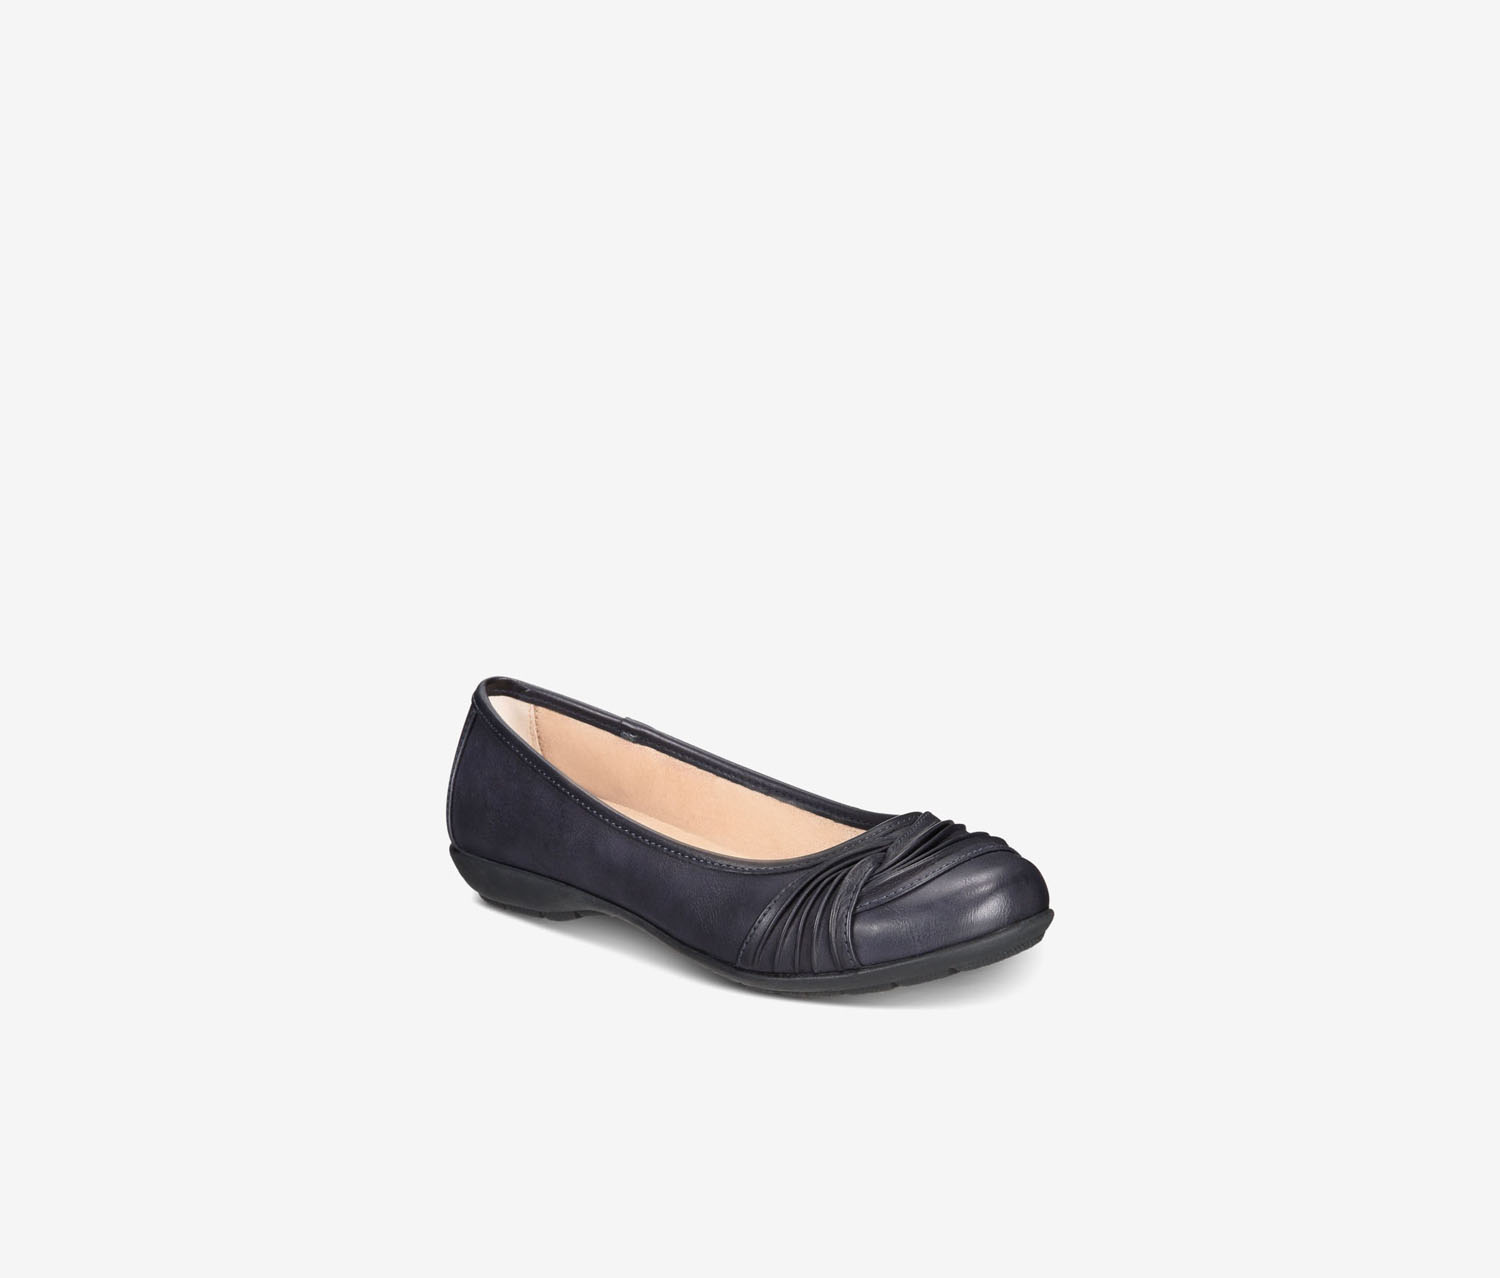 Women's Sable Round Toe Ballet Flats, Navy Blue